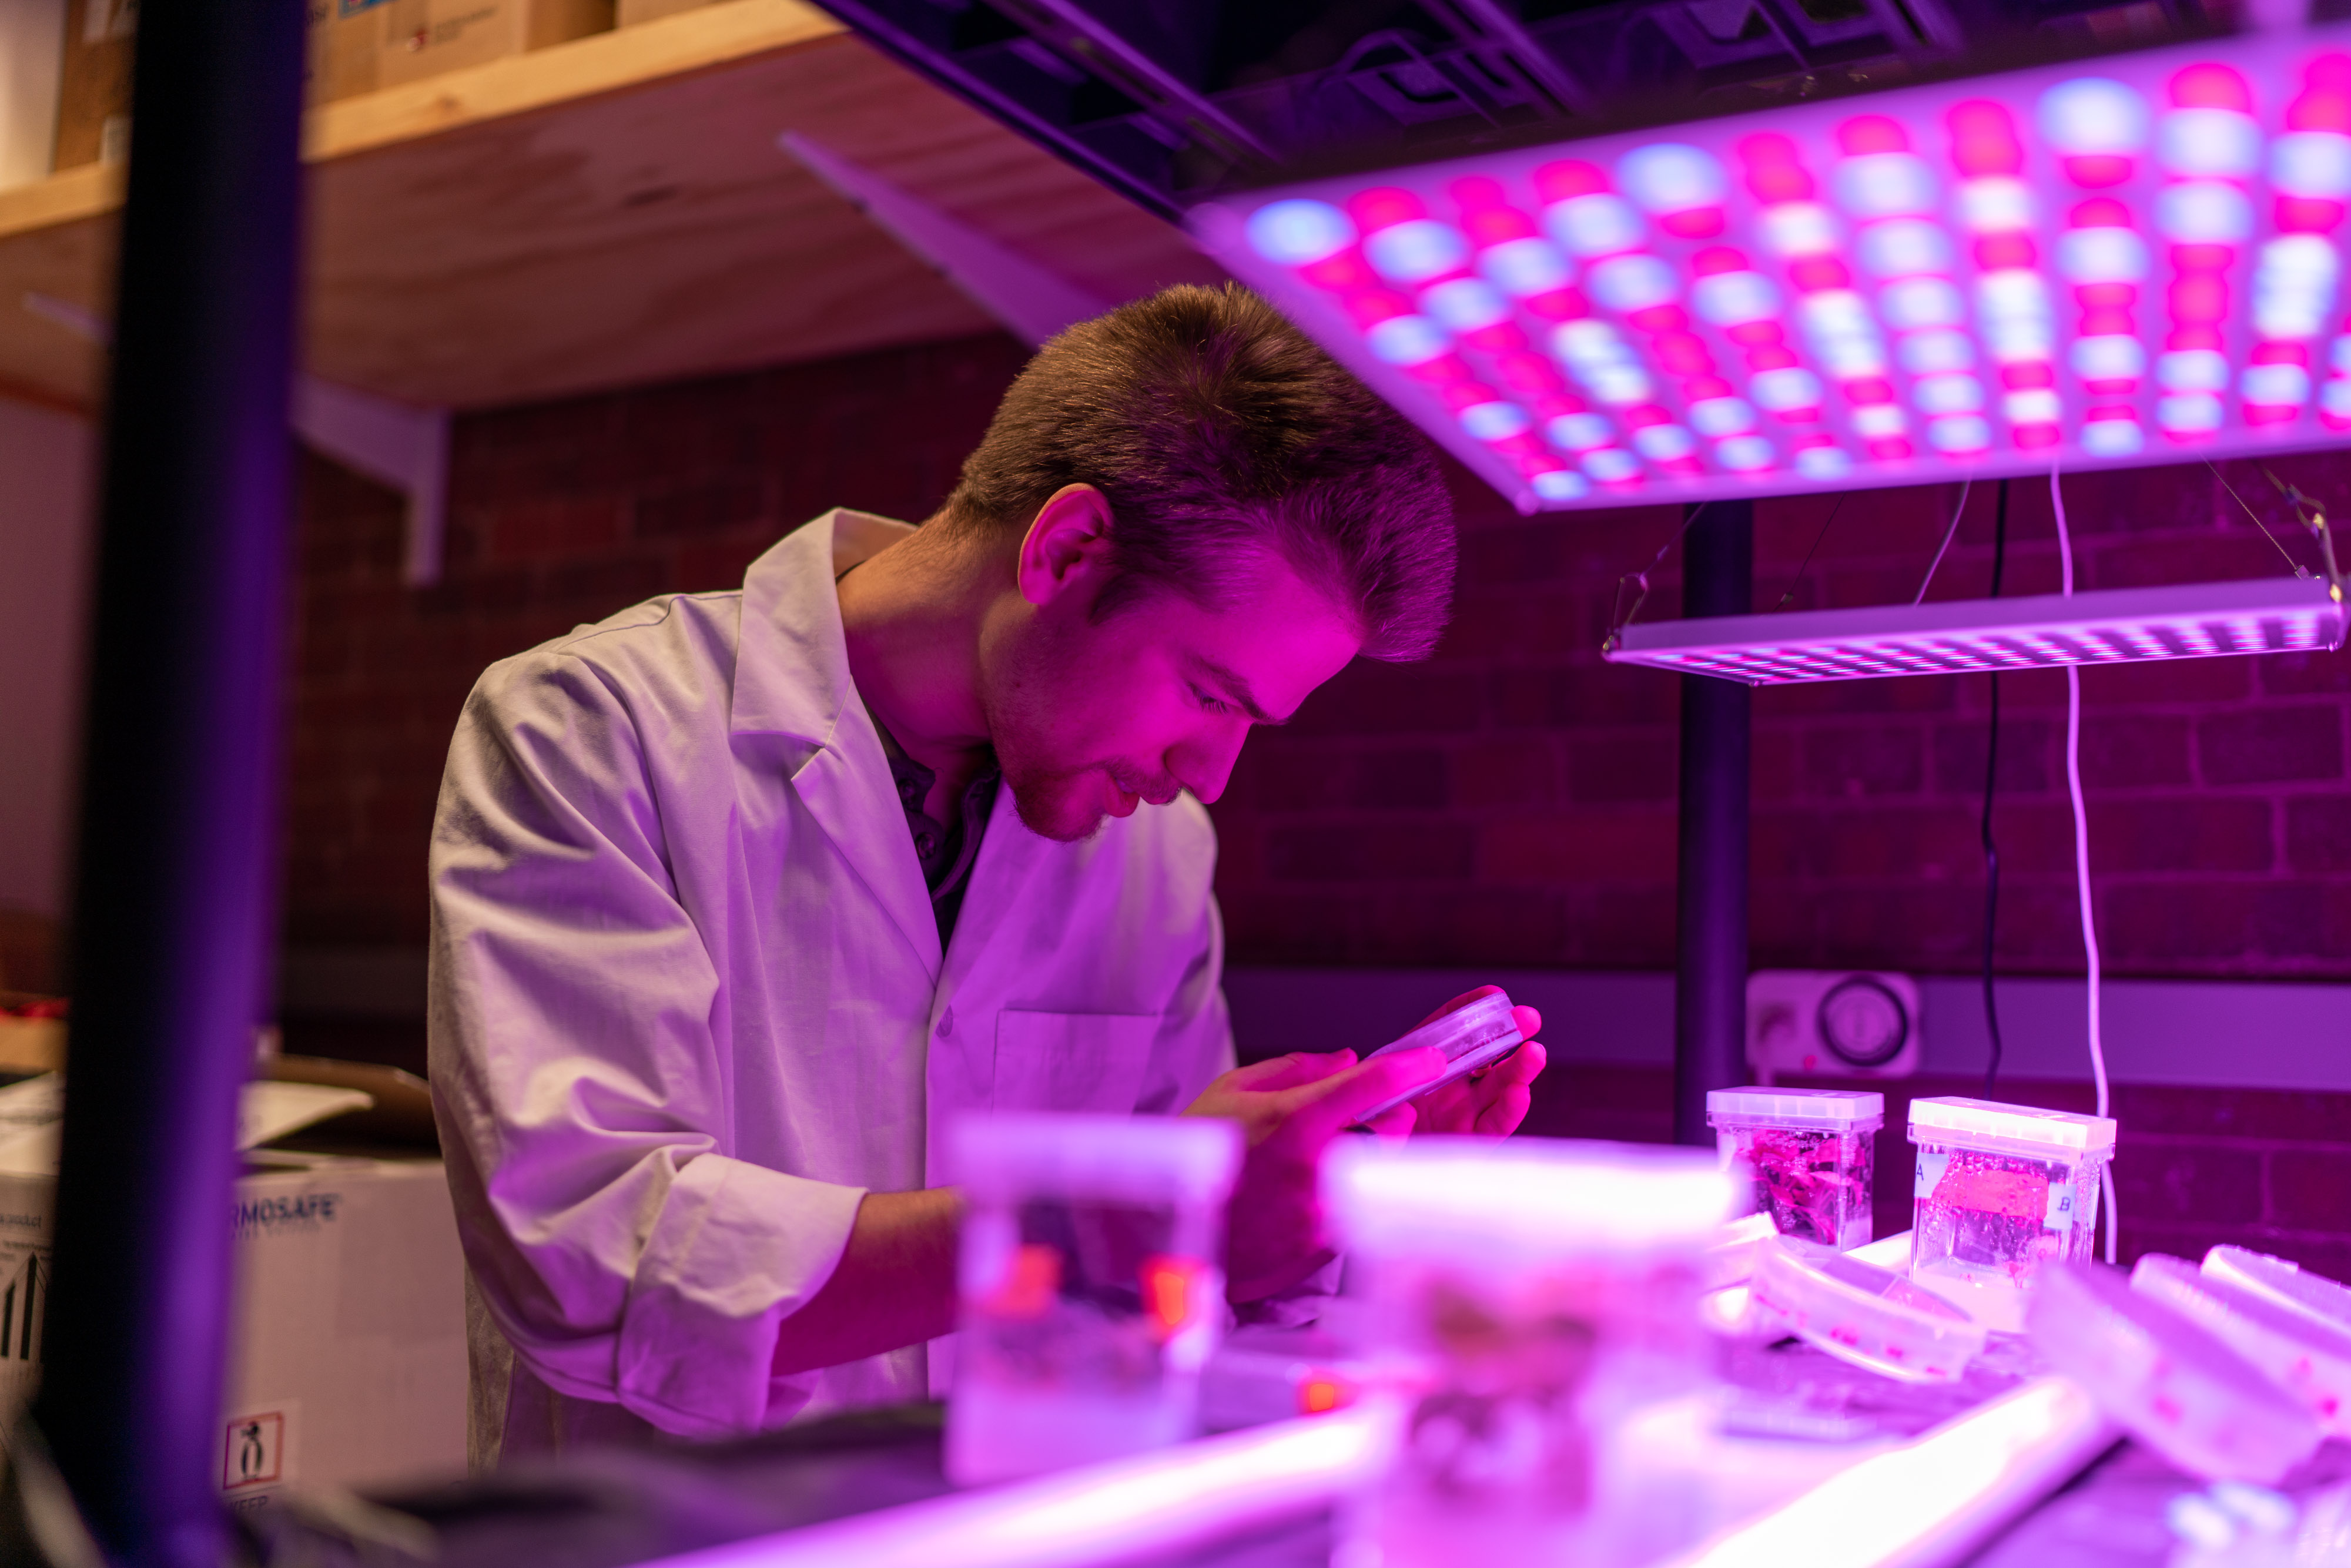 Biological sciences student in the lab